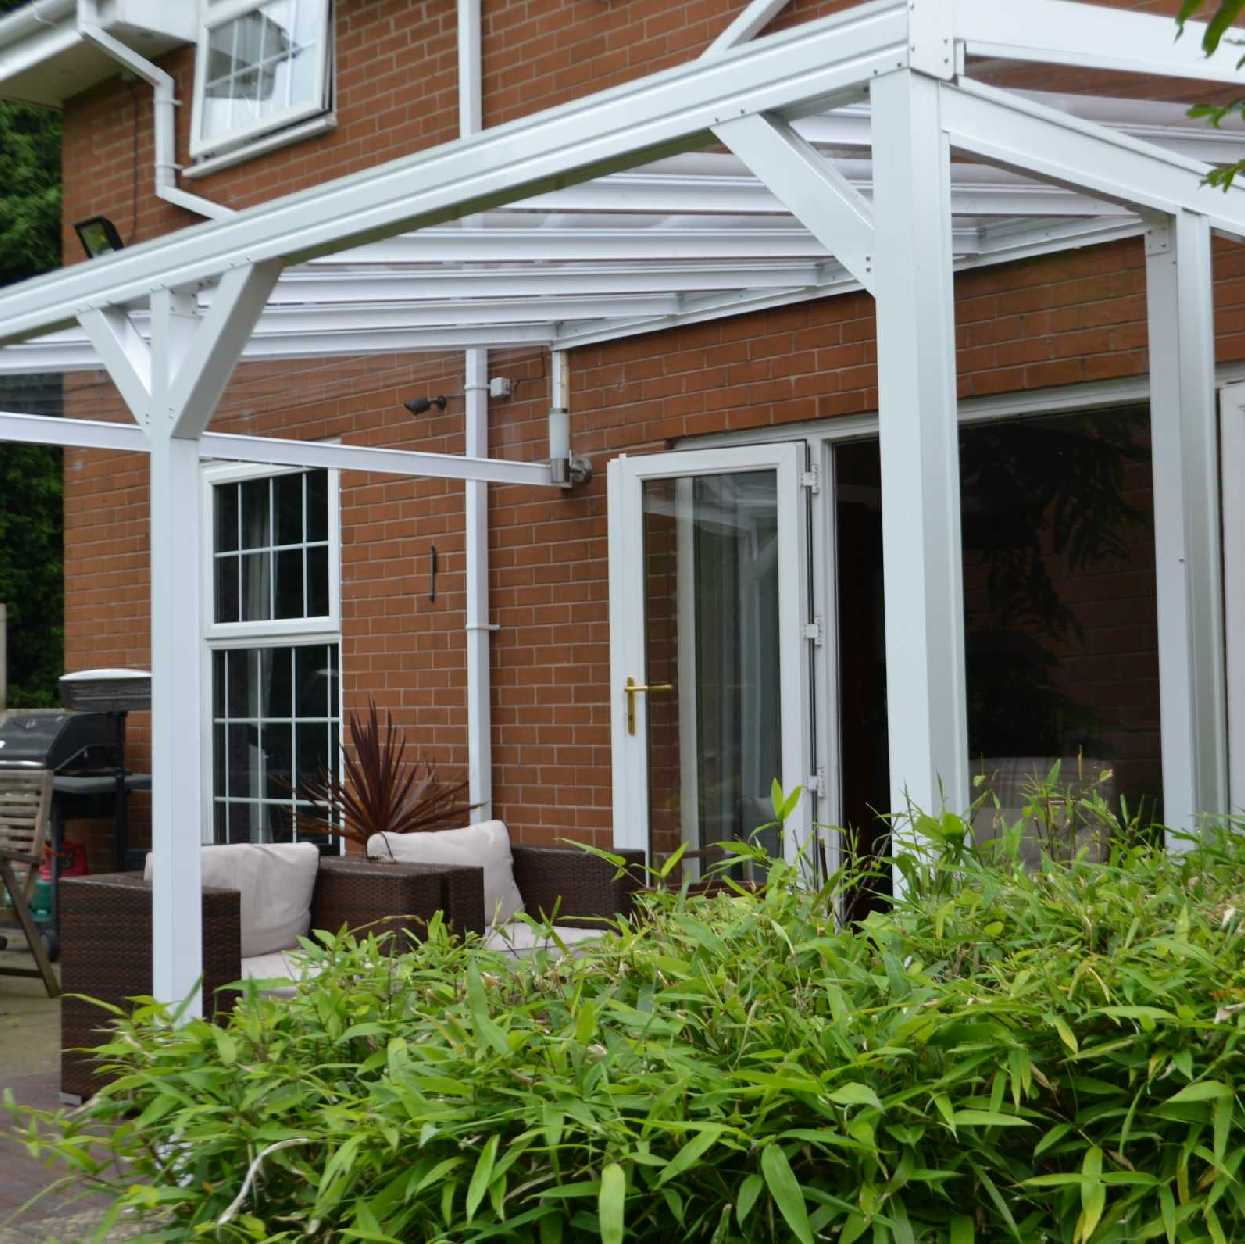 Omega Smart Lean-To Canopy UNGLAZED for 6mm Glazing - 2.8m (W) x 1.5m (P), (2) Supporting Posts from Omega Build